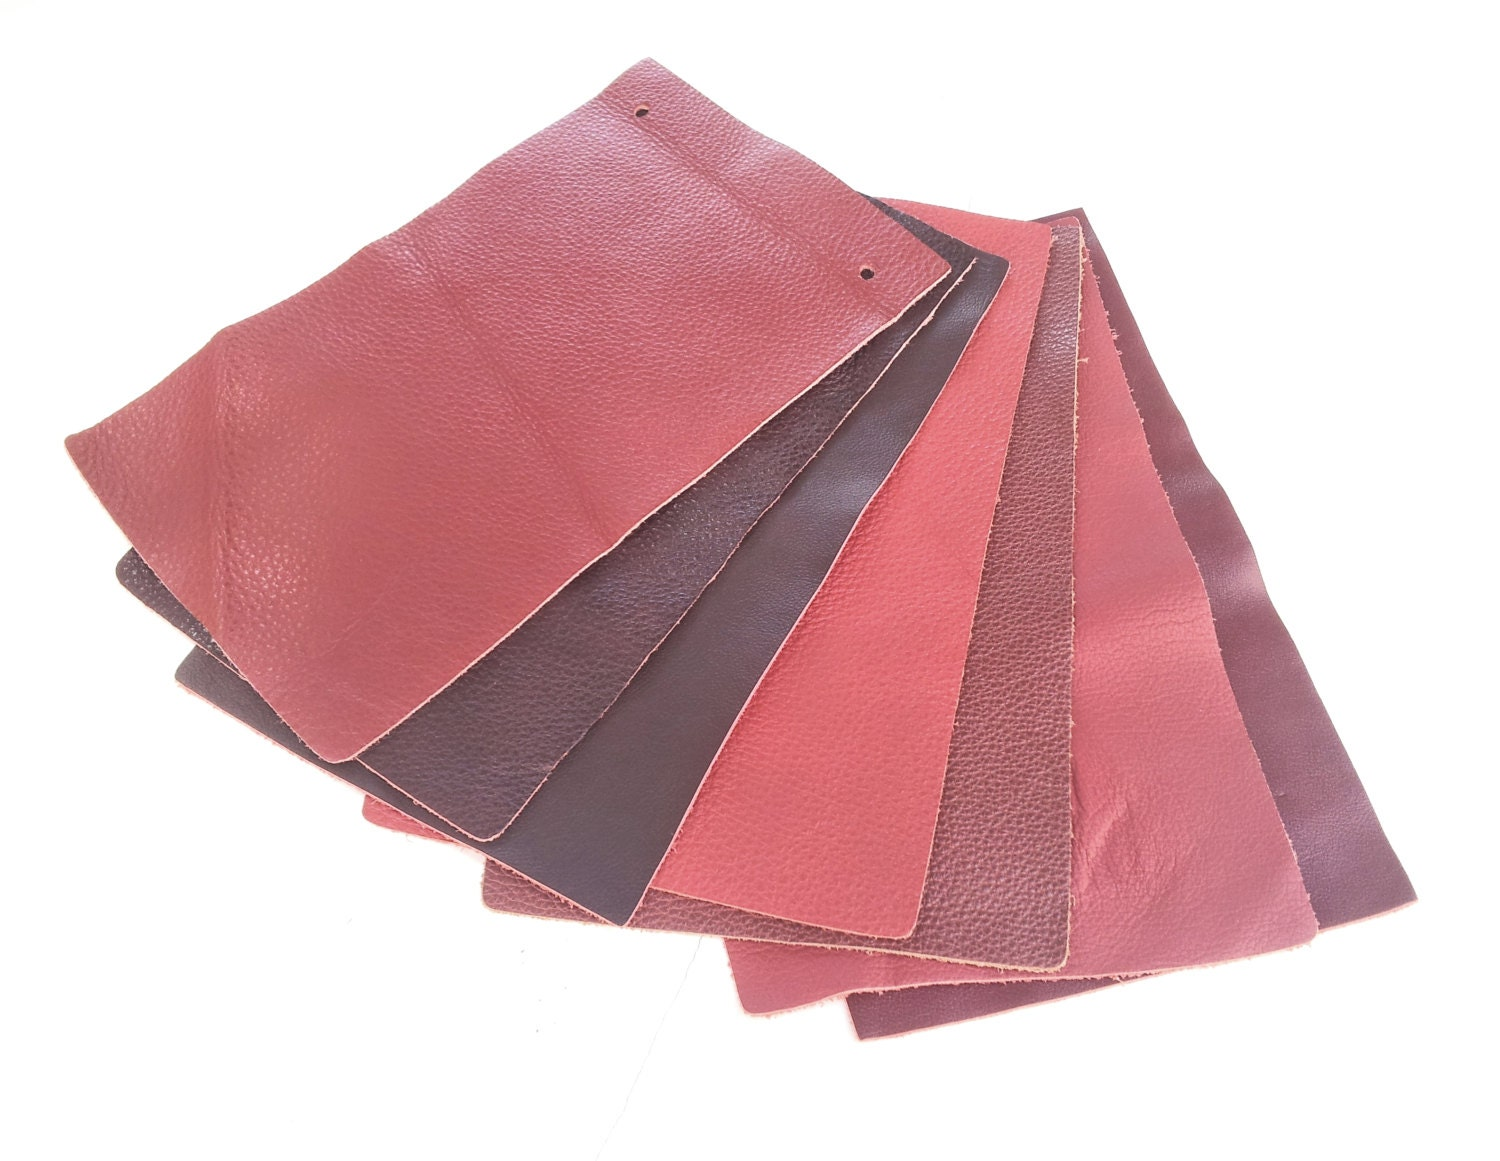 Red leather piece 9 9 x 5 9 craft supplies for for Wholesale leather craft supplies